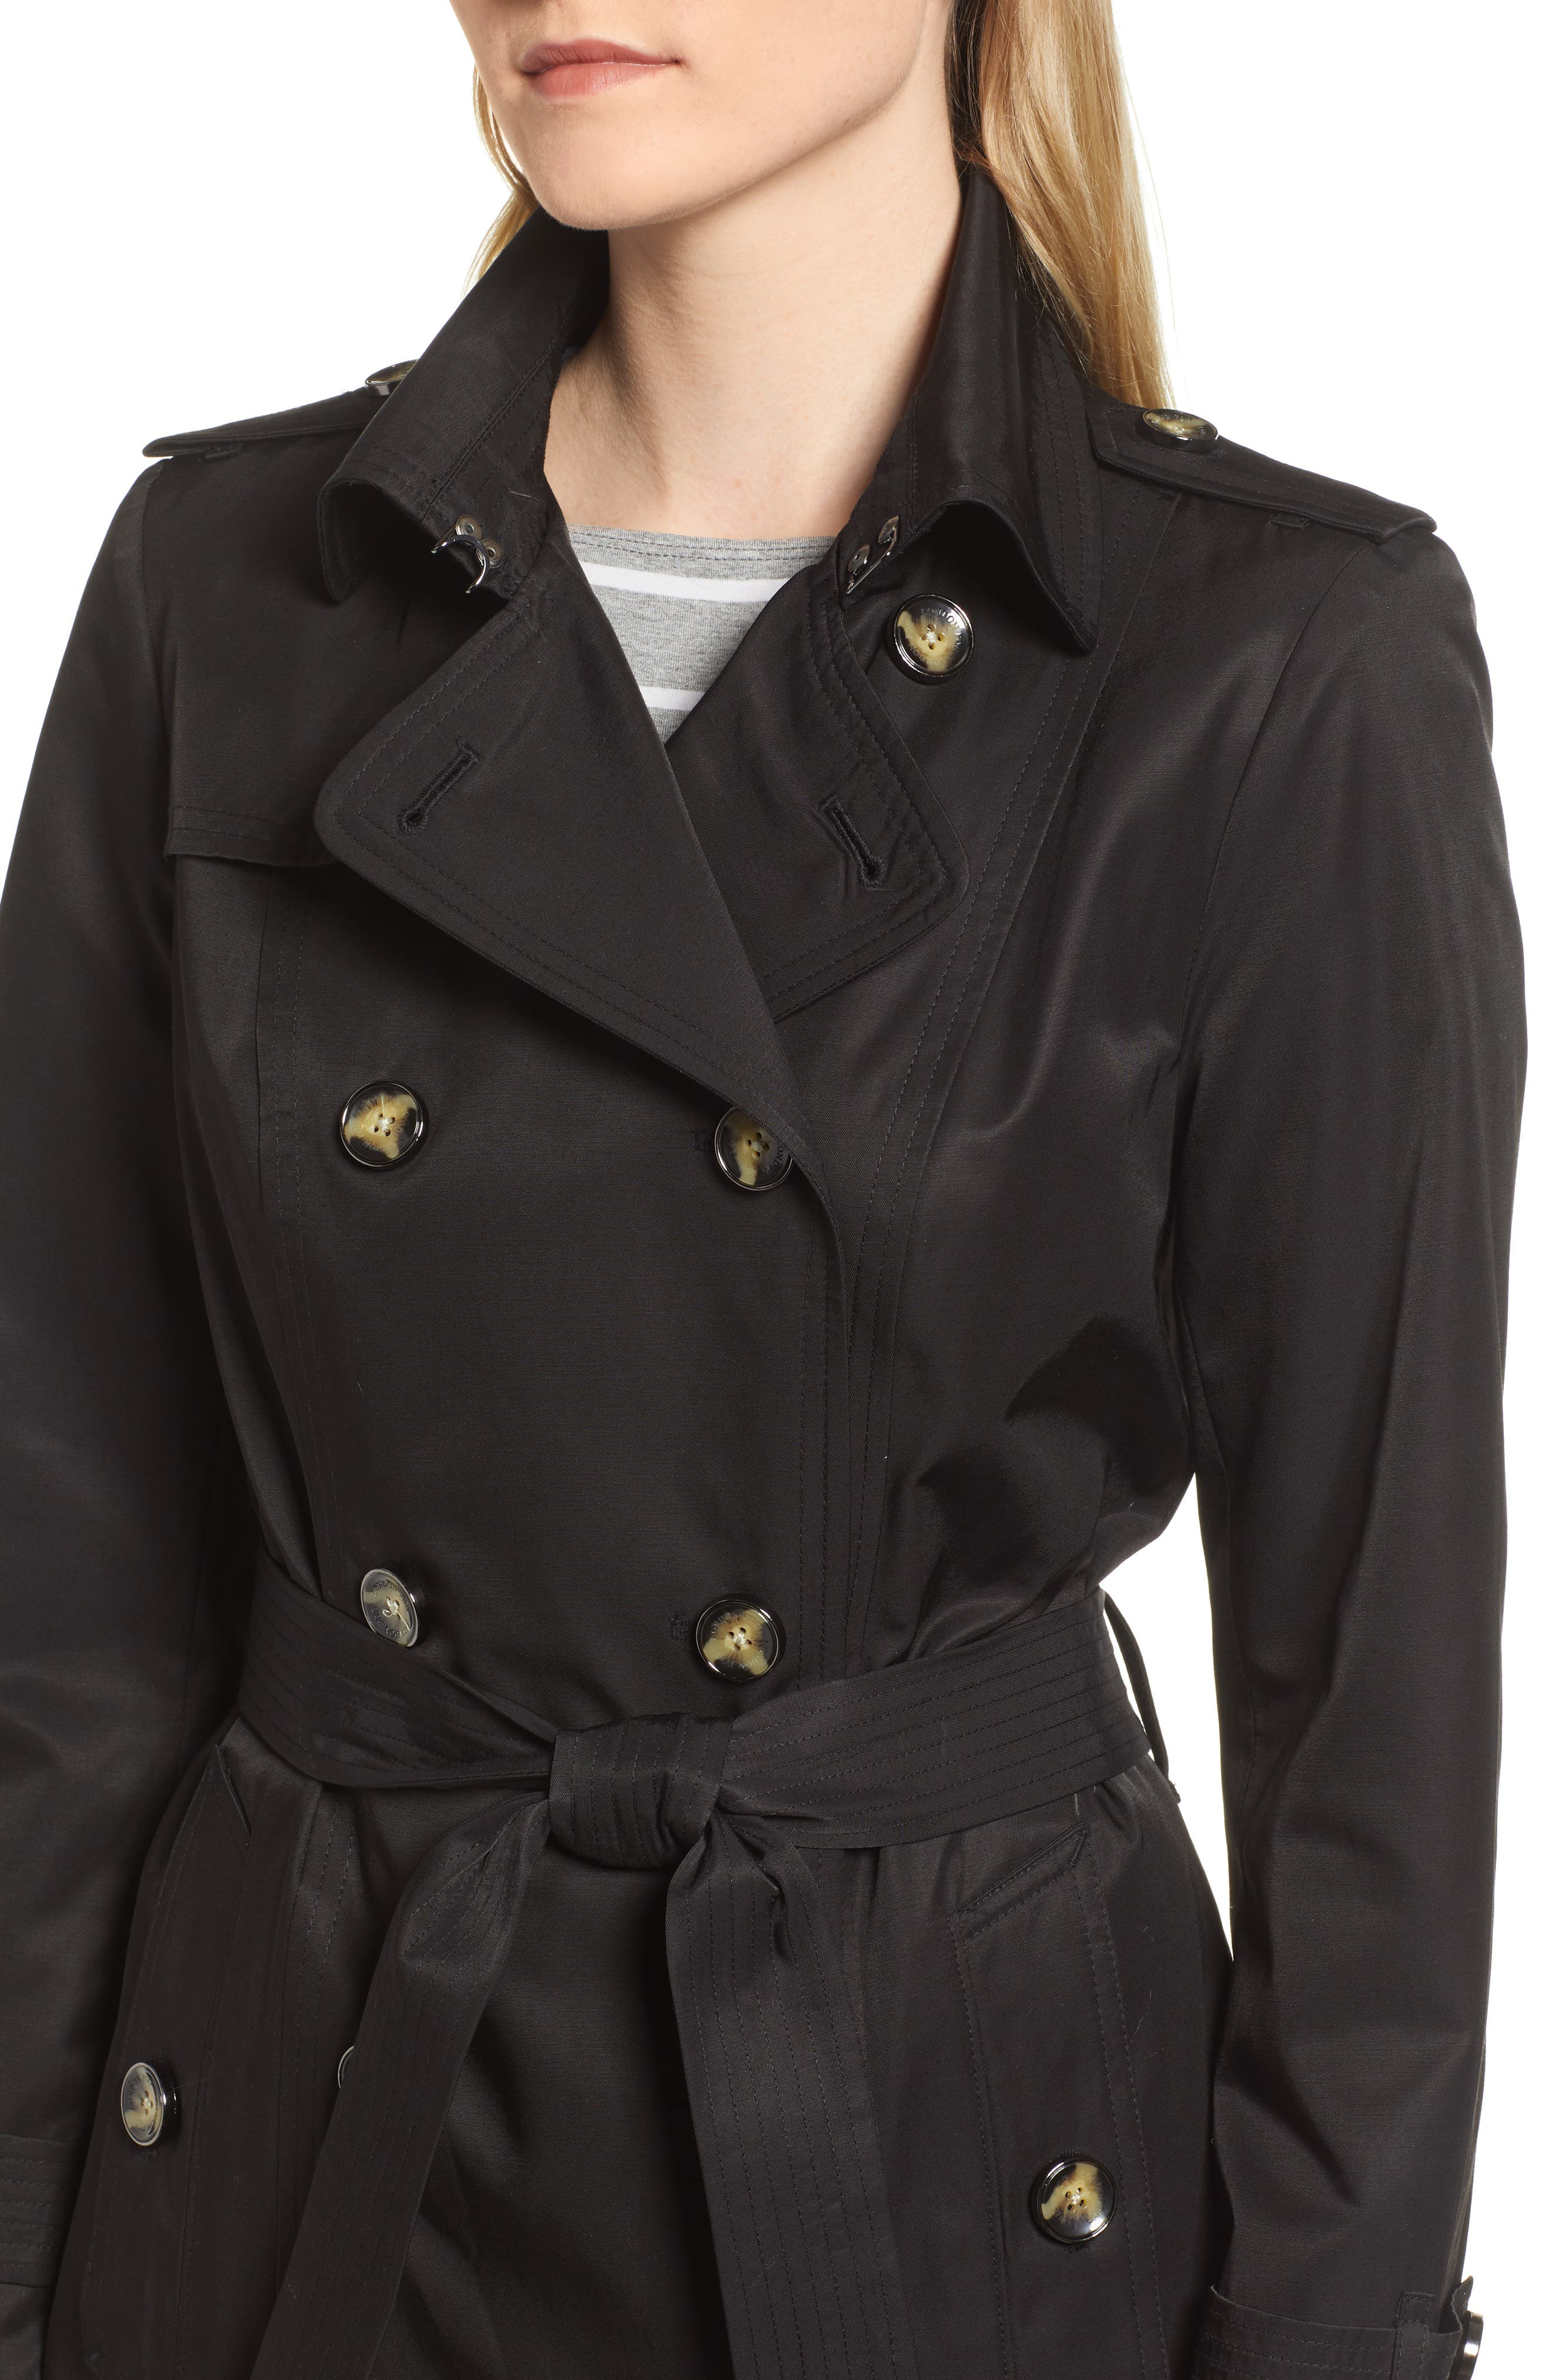 Double Breasted Trench Coat,                             Alternate thumbnail 4, color,                             BLACK